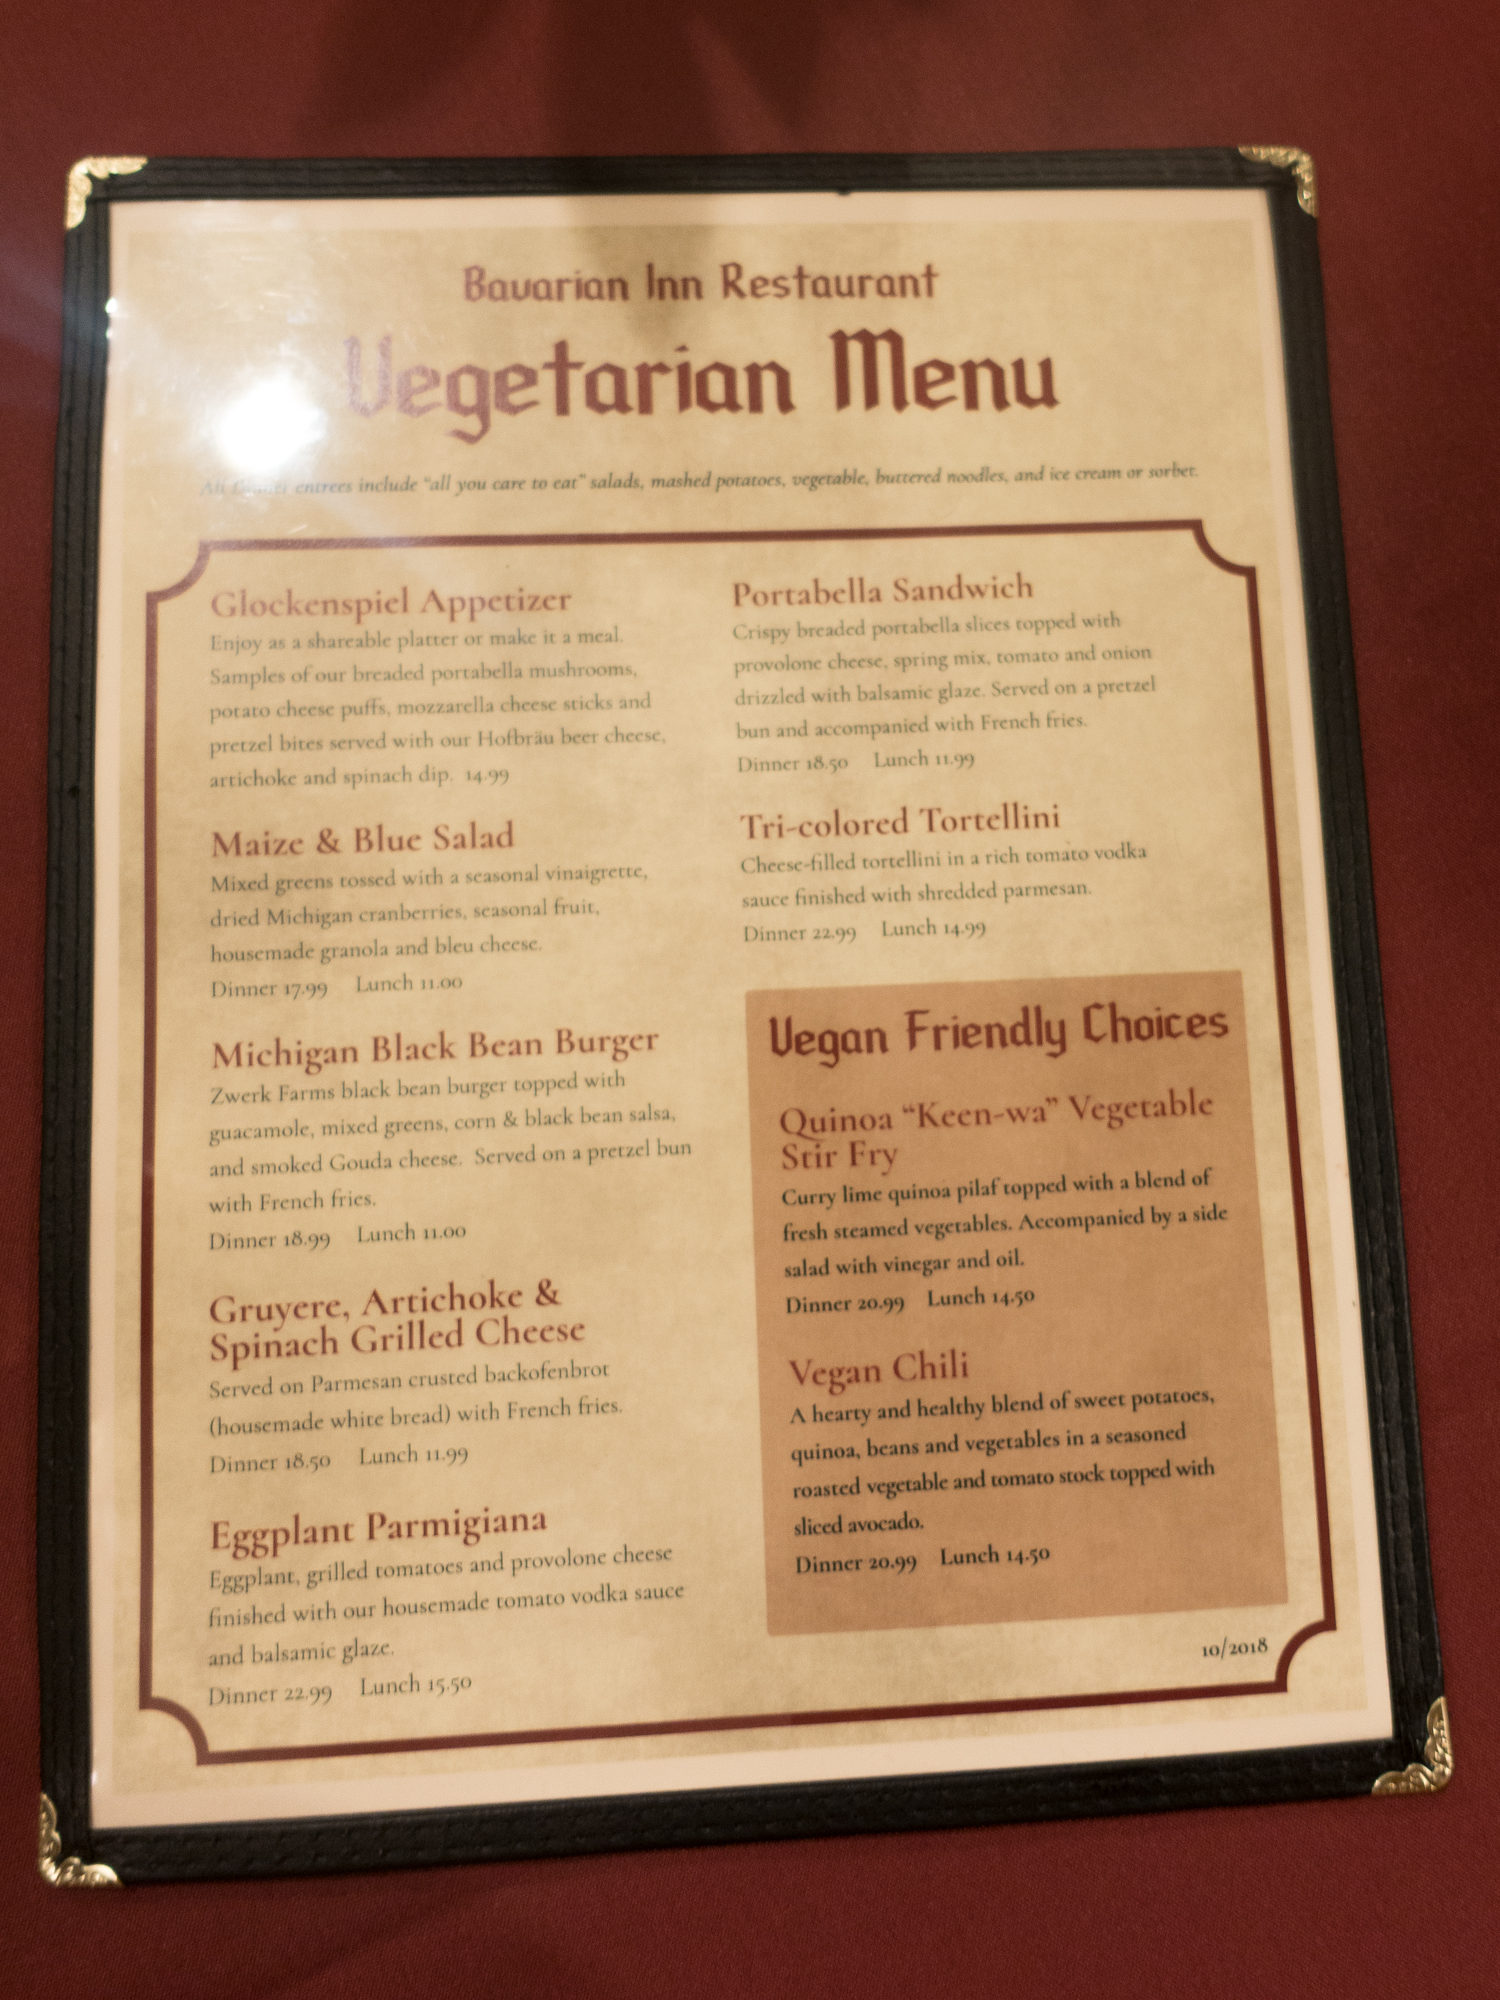 At the Bavarian Inn, they offer a separate vegetarian and vegan menu. There are two vegan options on the menu—a quinoa stir fry and vegan chili. I have had both, but I prefer the vegan chili. It is a little on the expensive side for the portion that you are served. You are really paying for the ambiance.